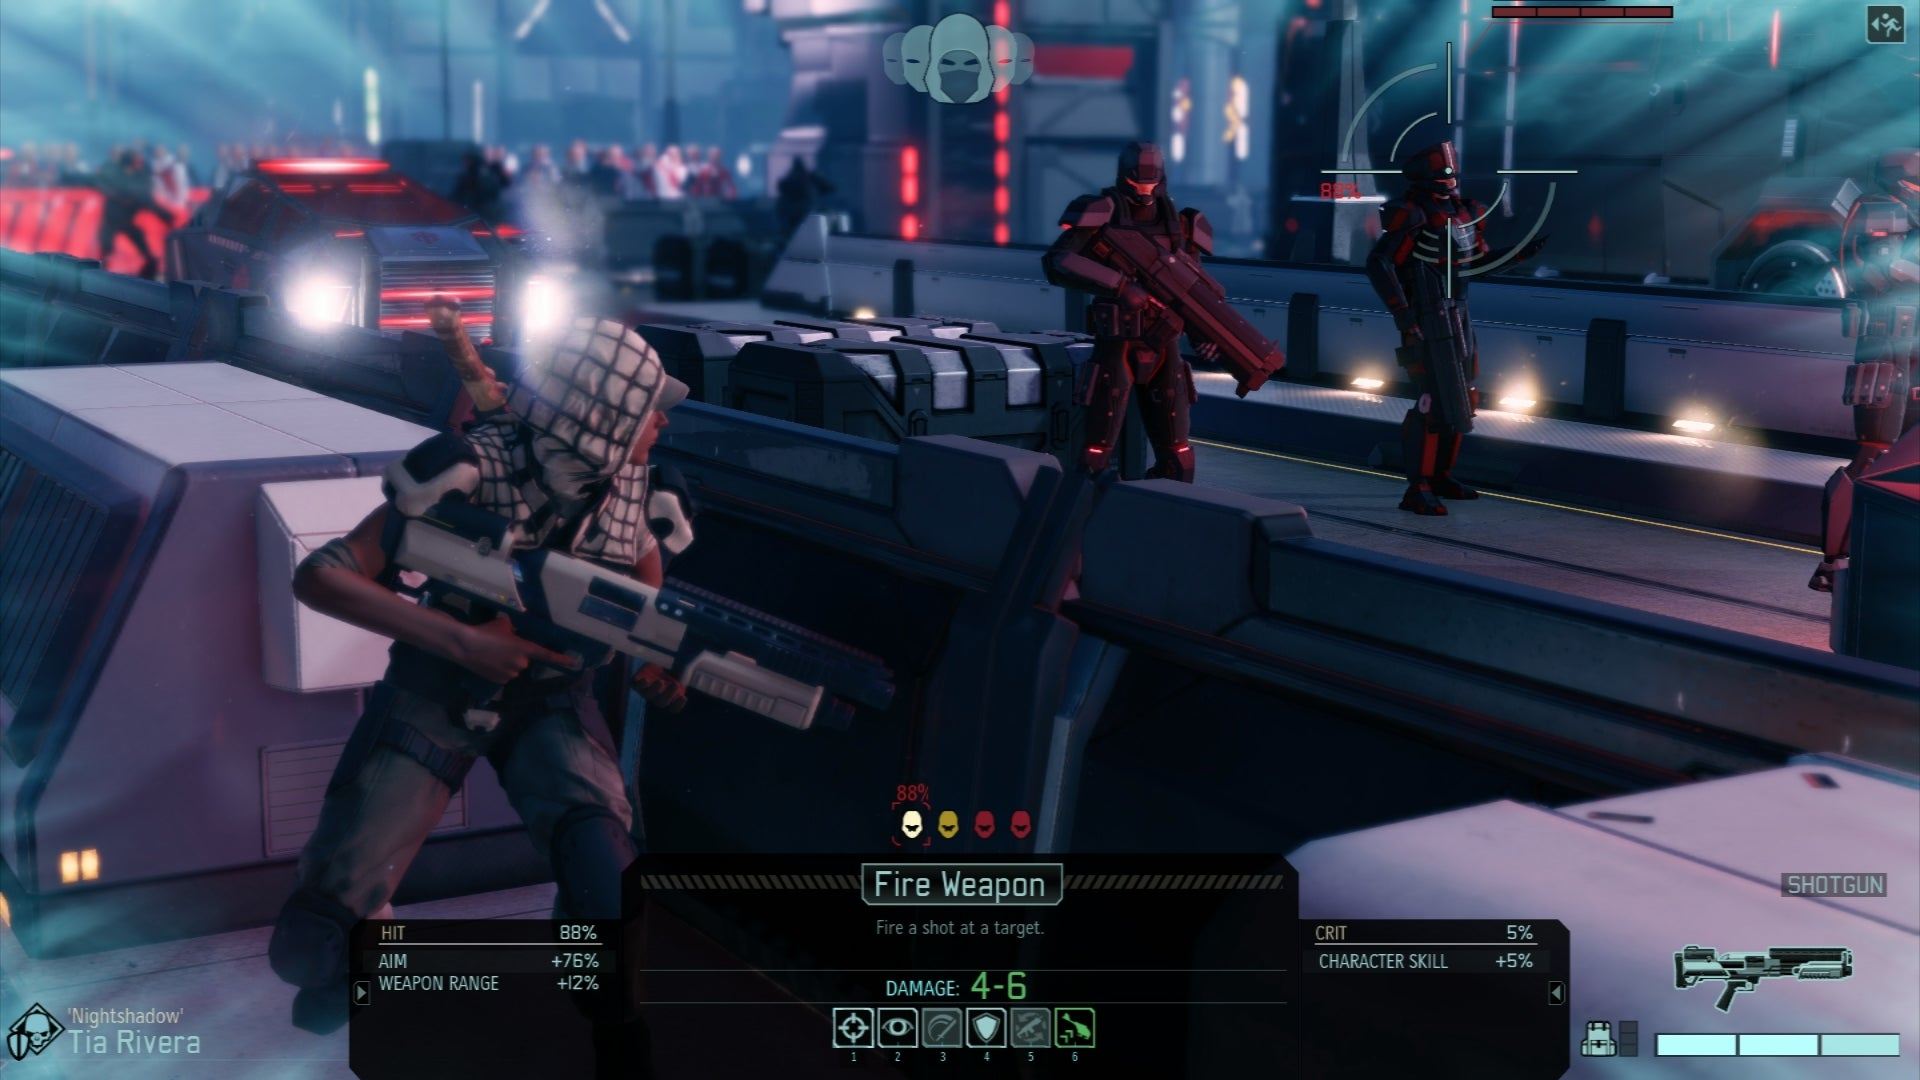 Firaxis Hires 'The Long War' Modders To Make Mods For XCOM 2